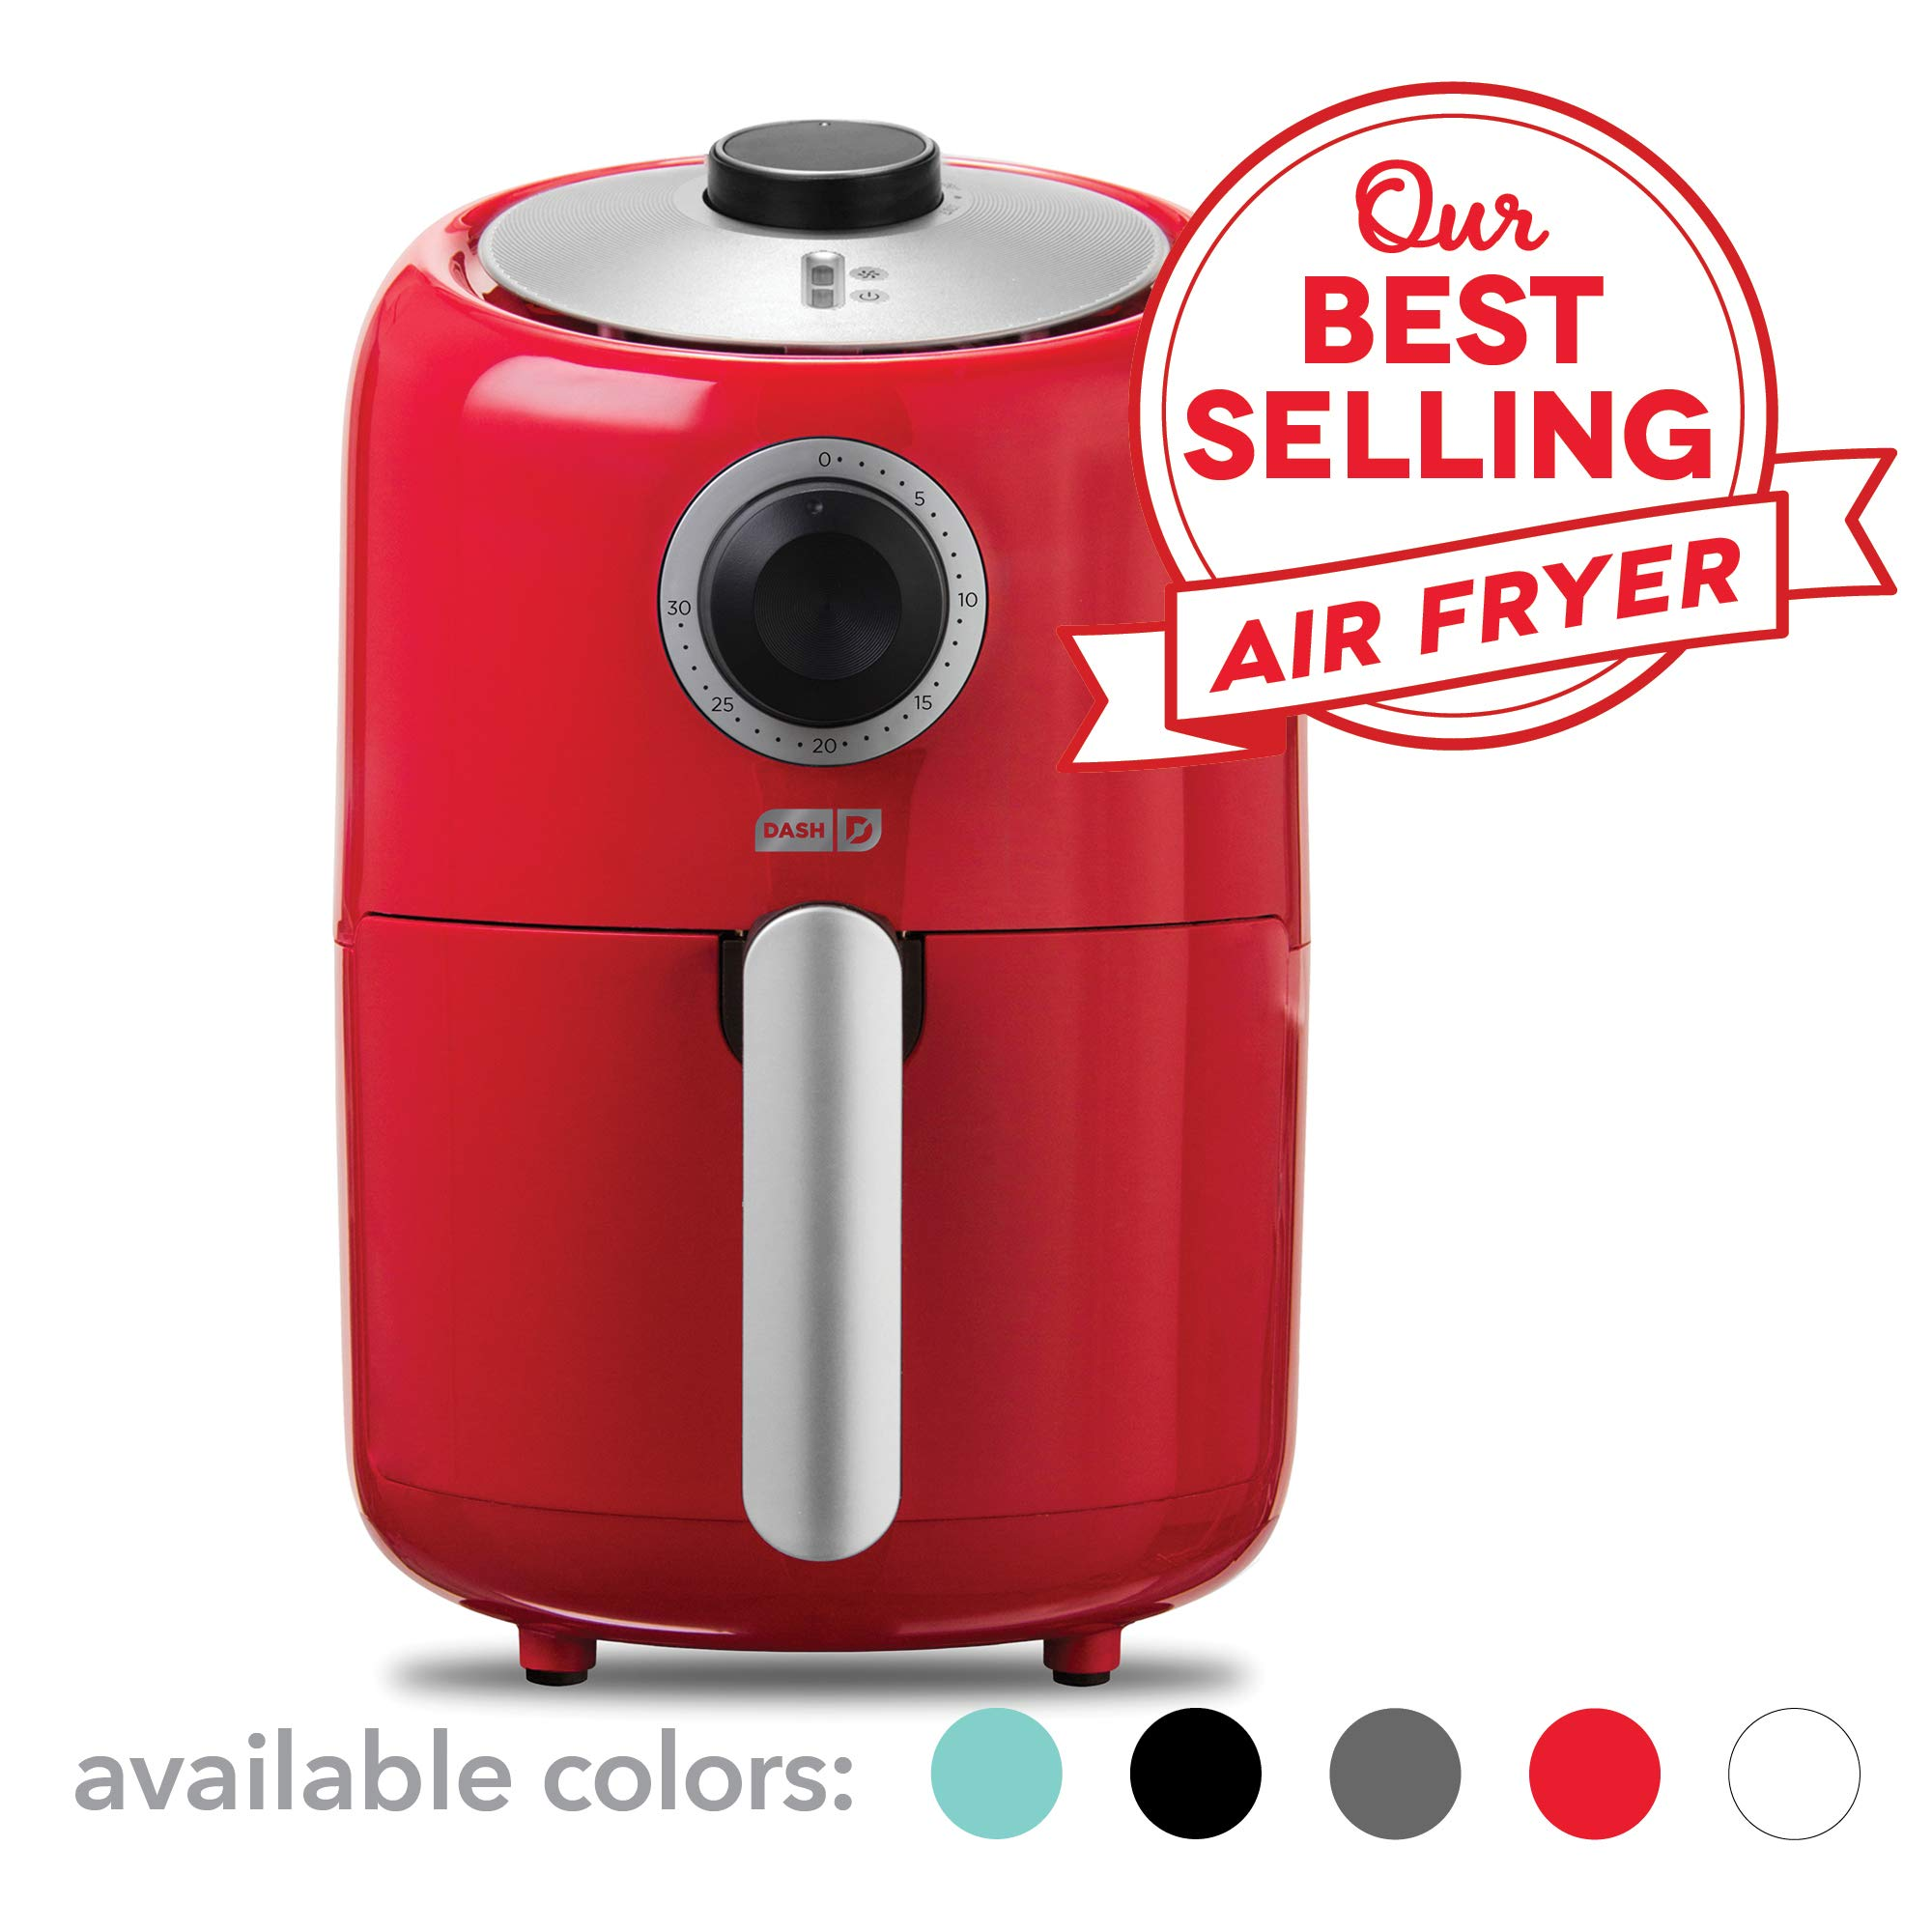 Dash Compact Air Fryer 1.2 L Electric Air Fryer Oven Cooker with Temperature Control, Non Stick Fry Basket, Recipe Guide + Auto Shut off Feature - Red by Dash (Image #1)